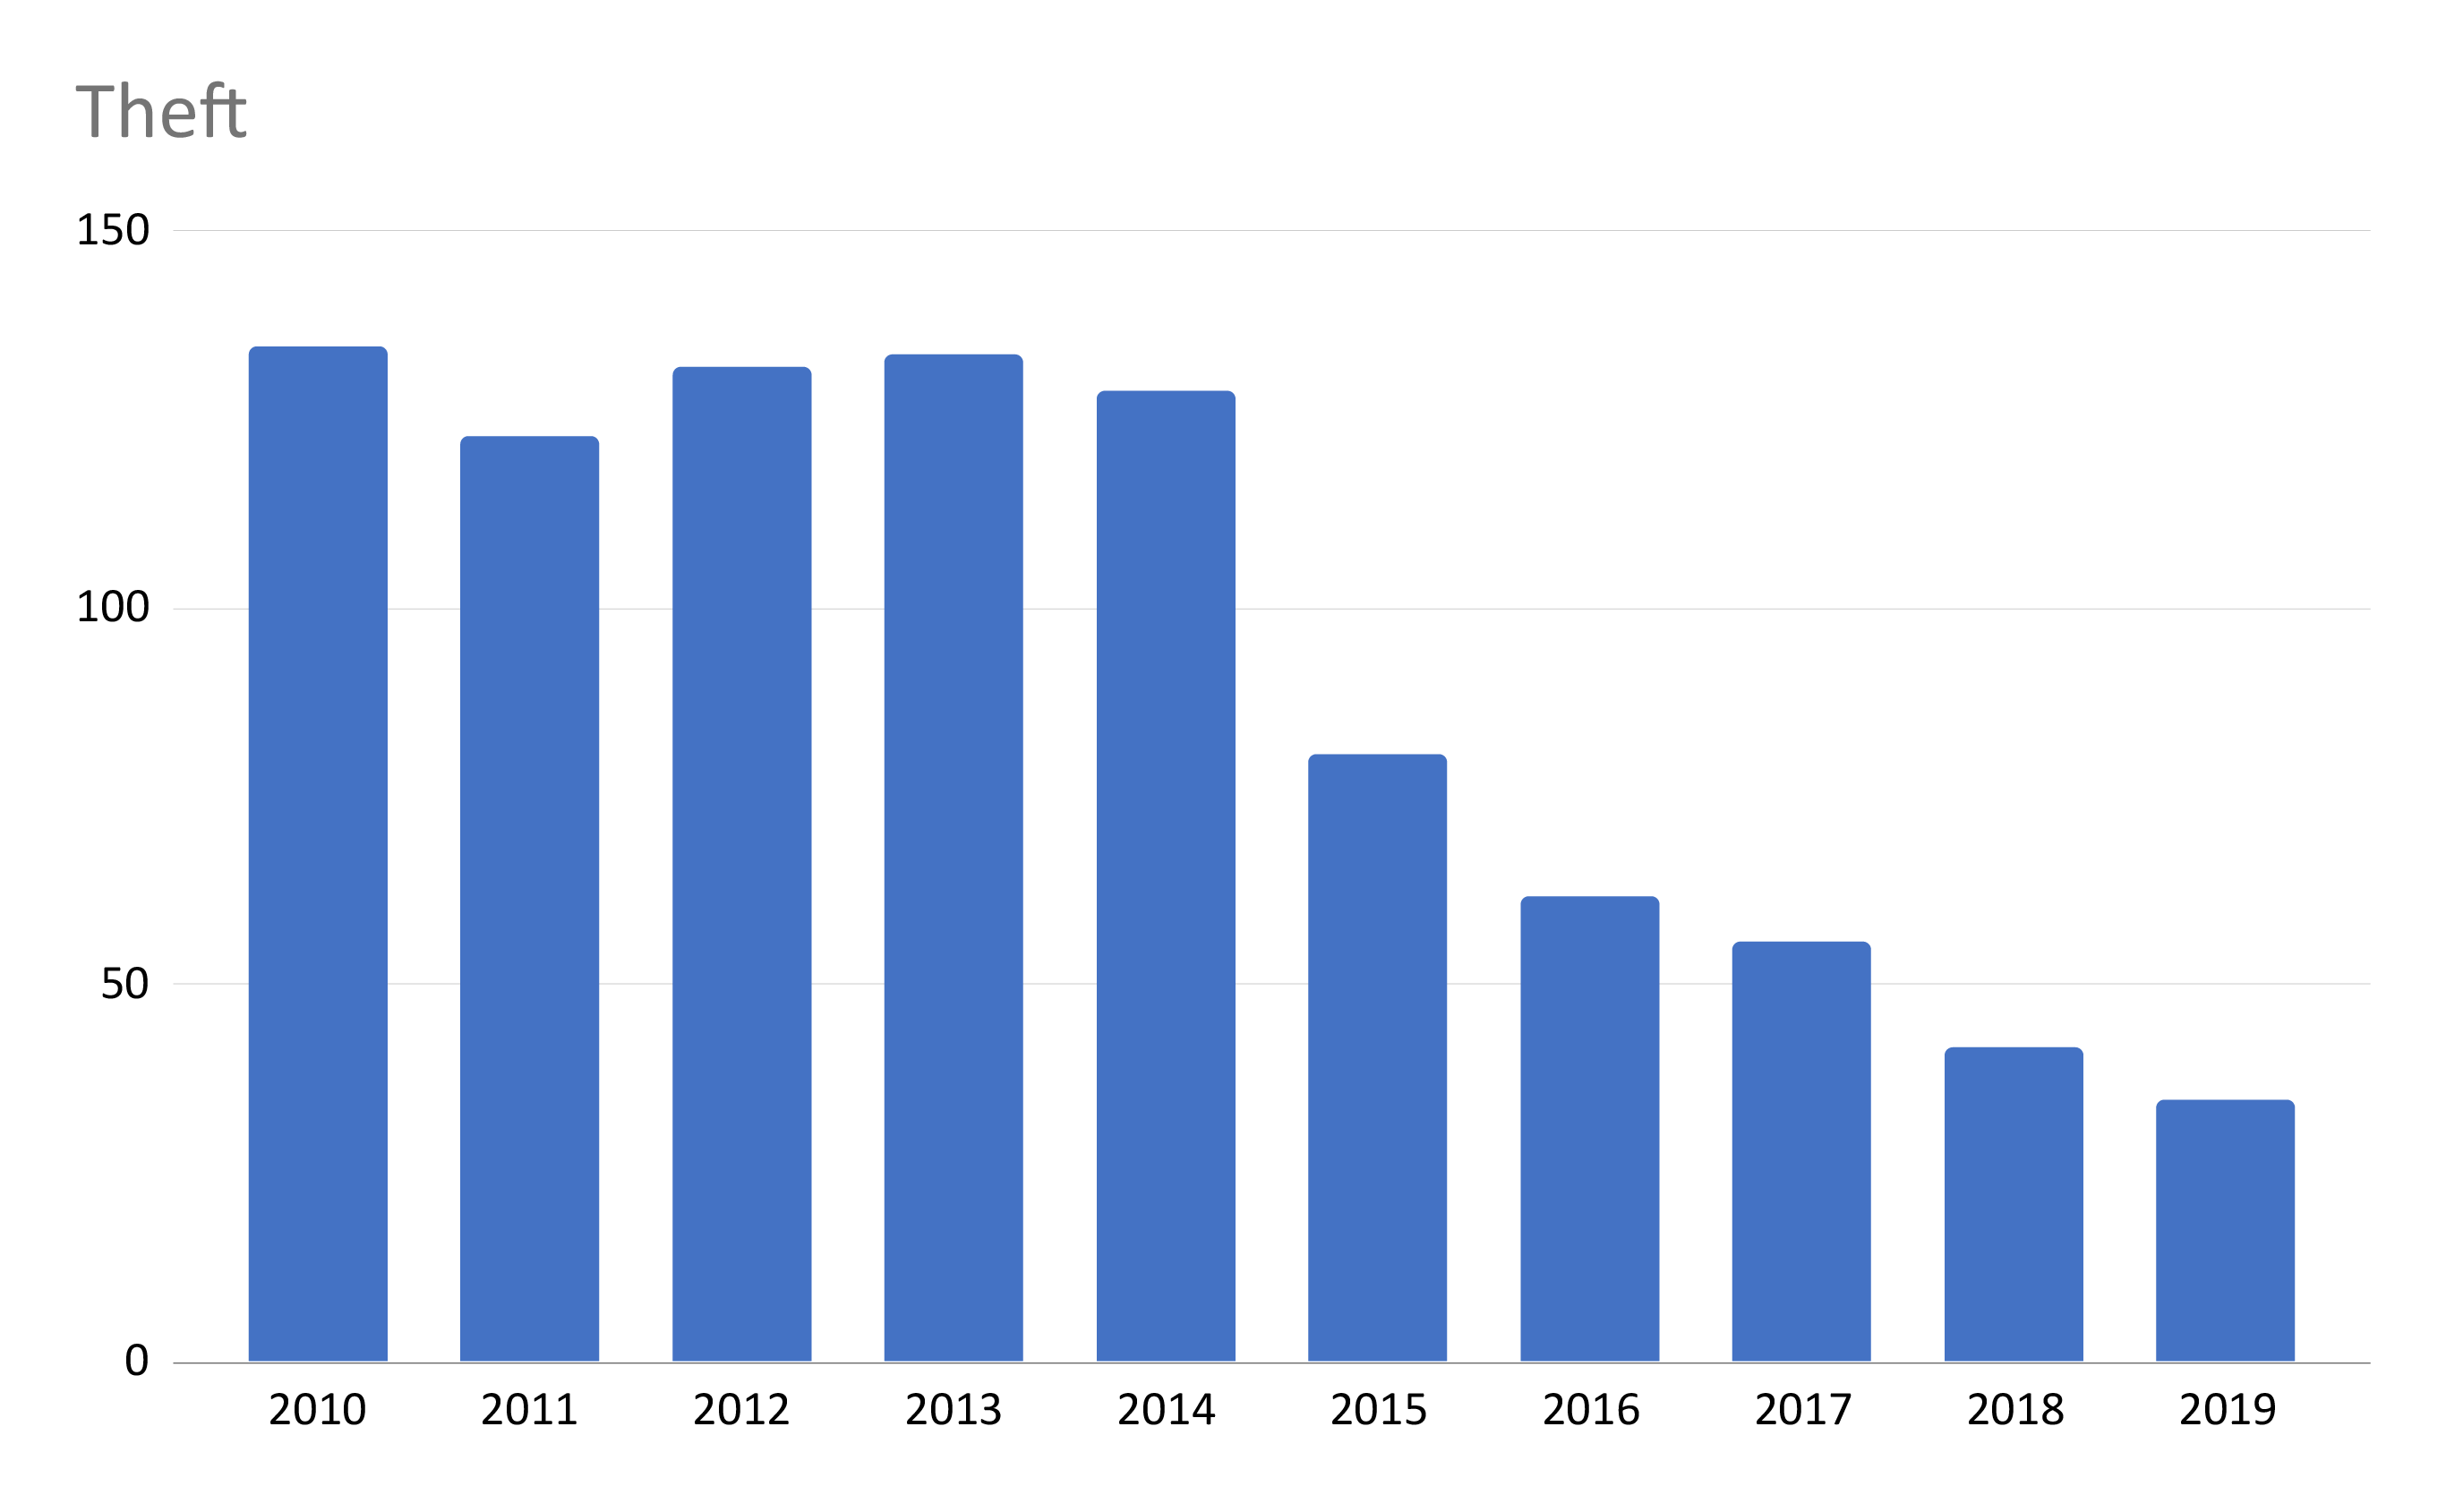 Hacking Incidents Over Time